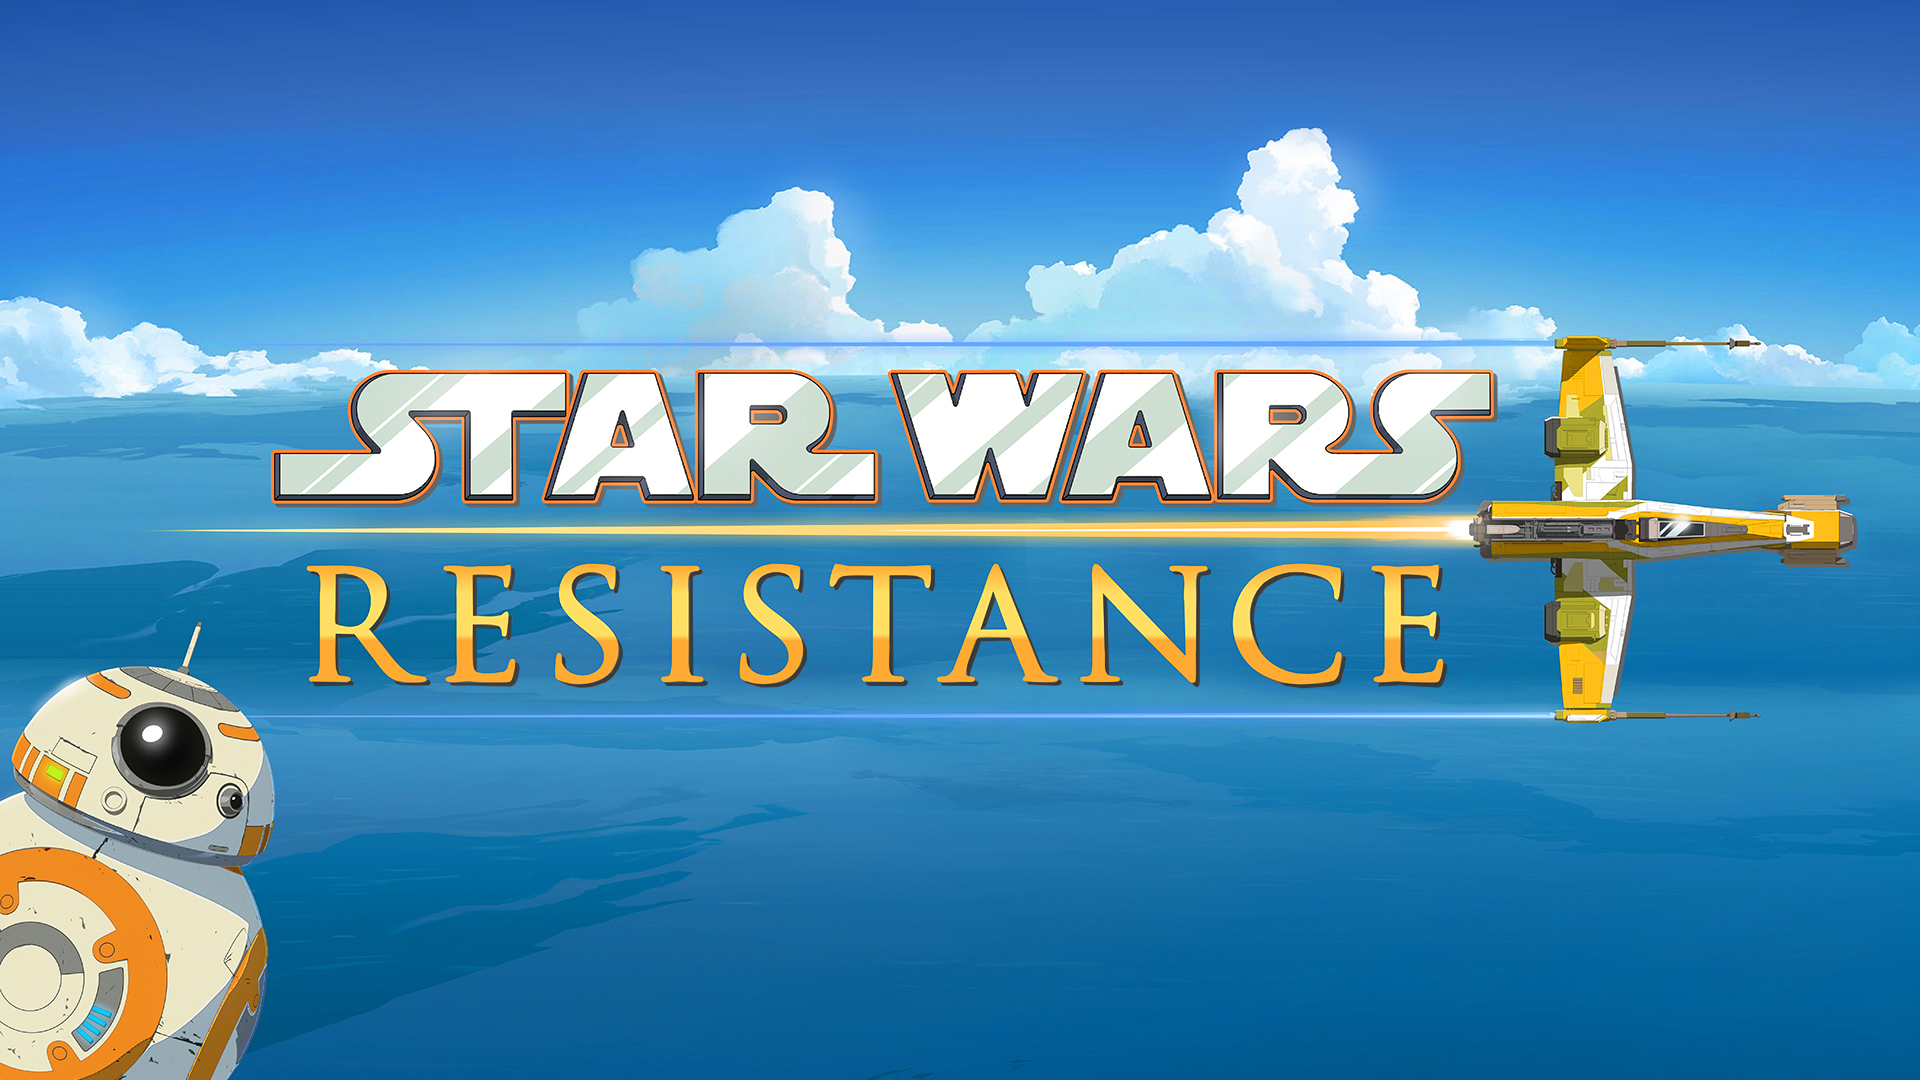 Star Wars Resistance episode list